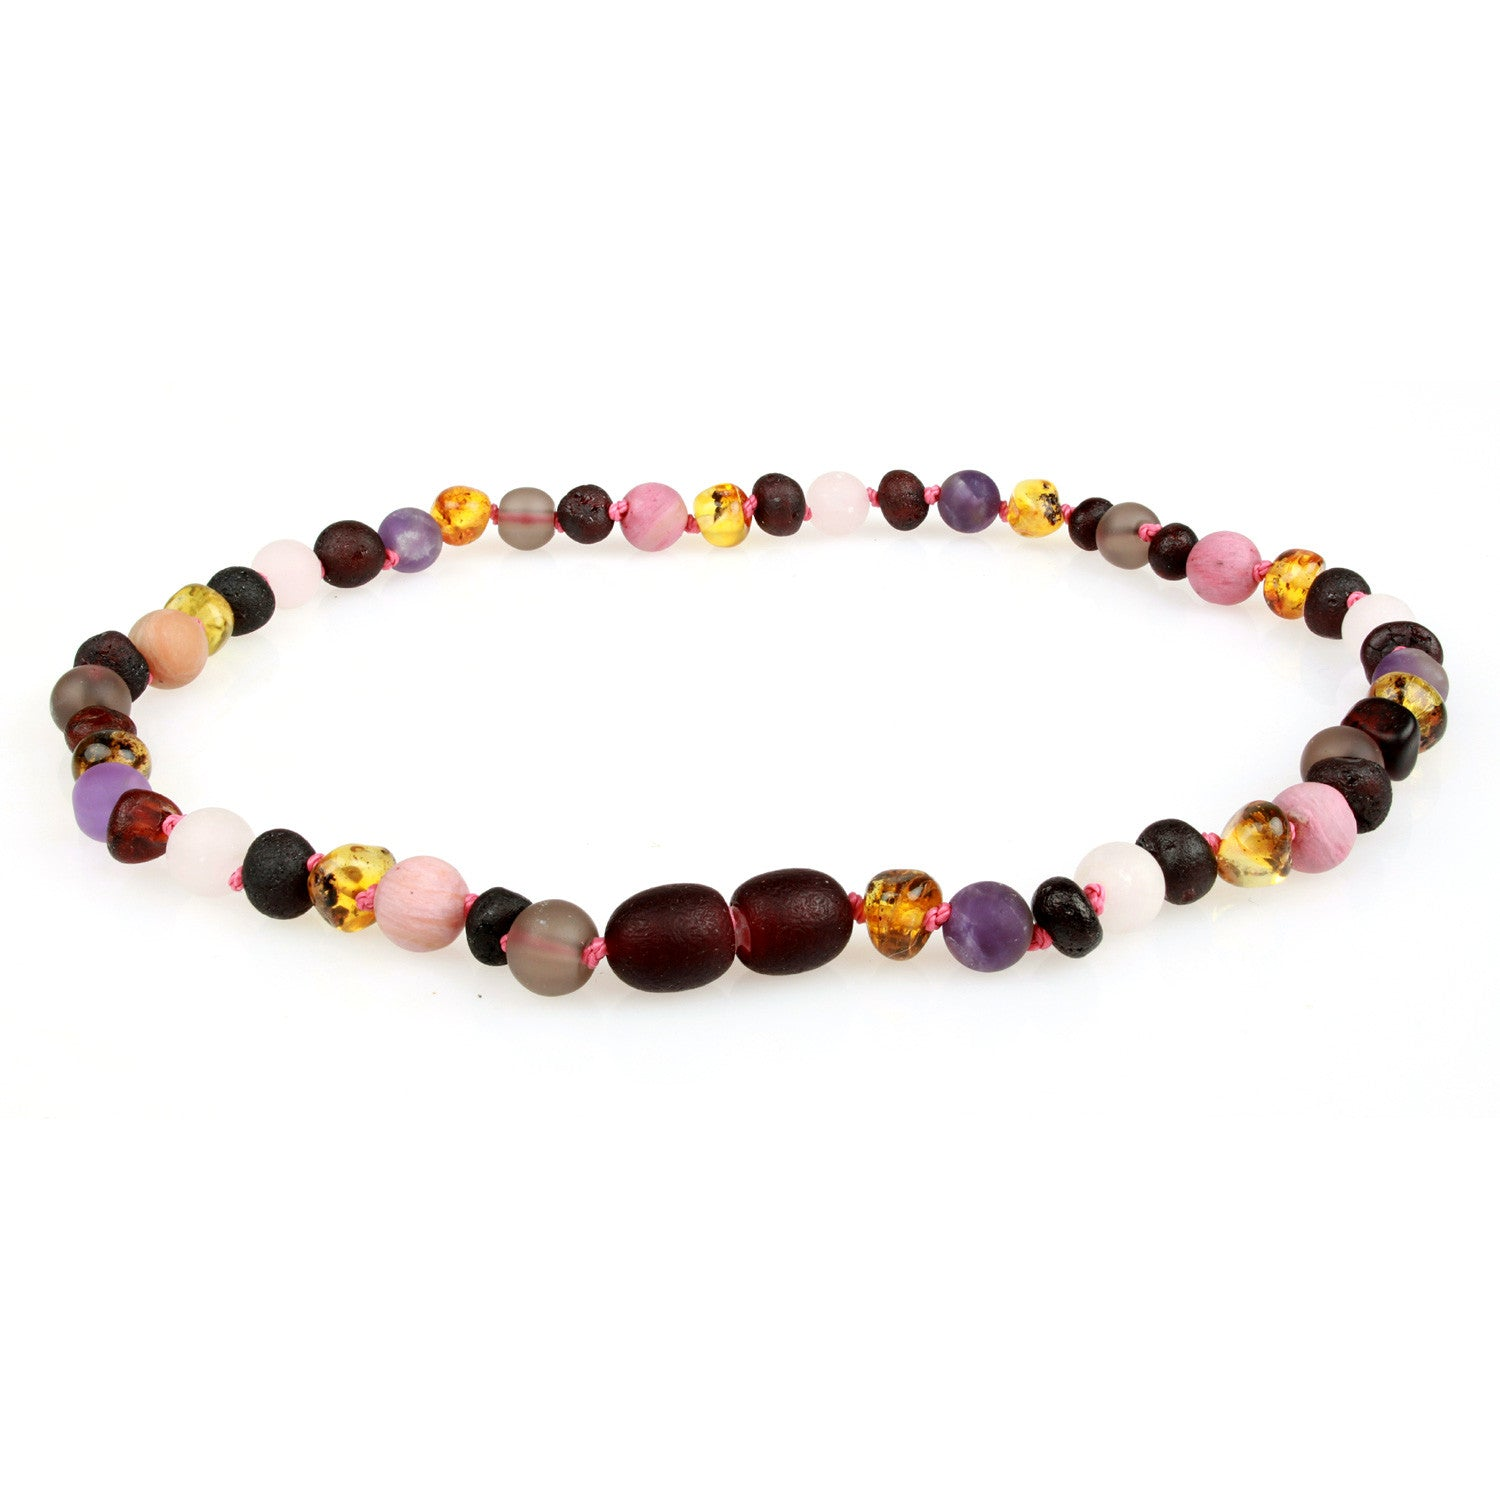 product stone beautiful amyth necklaces boho amethyst final jewellery necklace gemstone